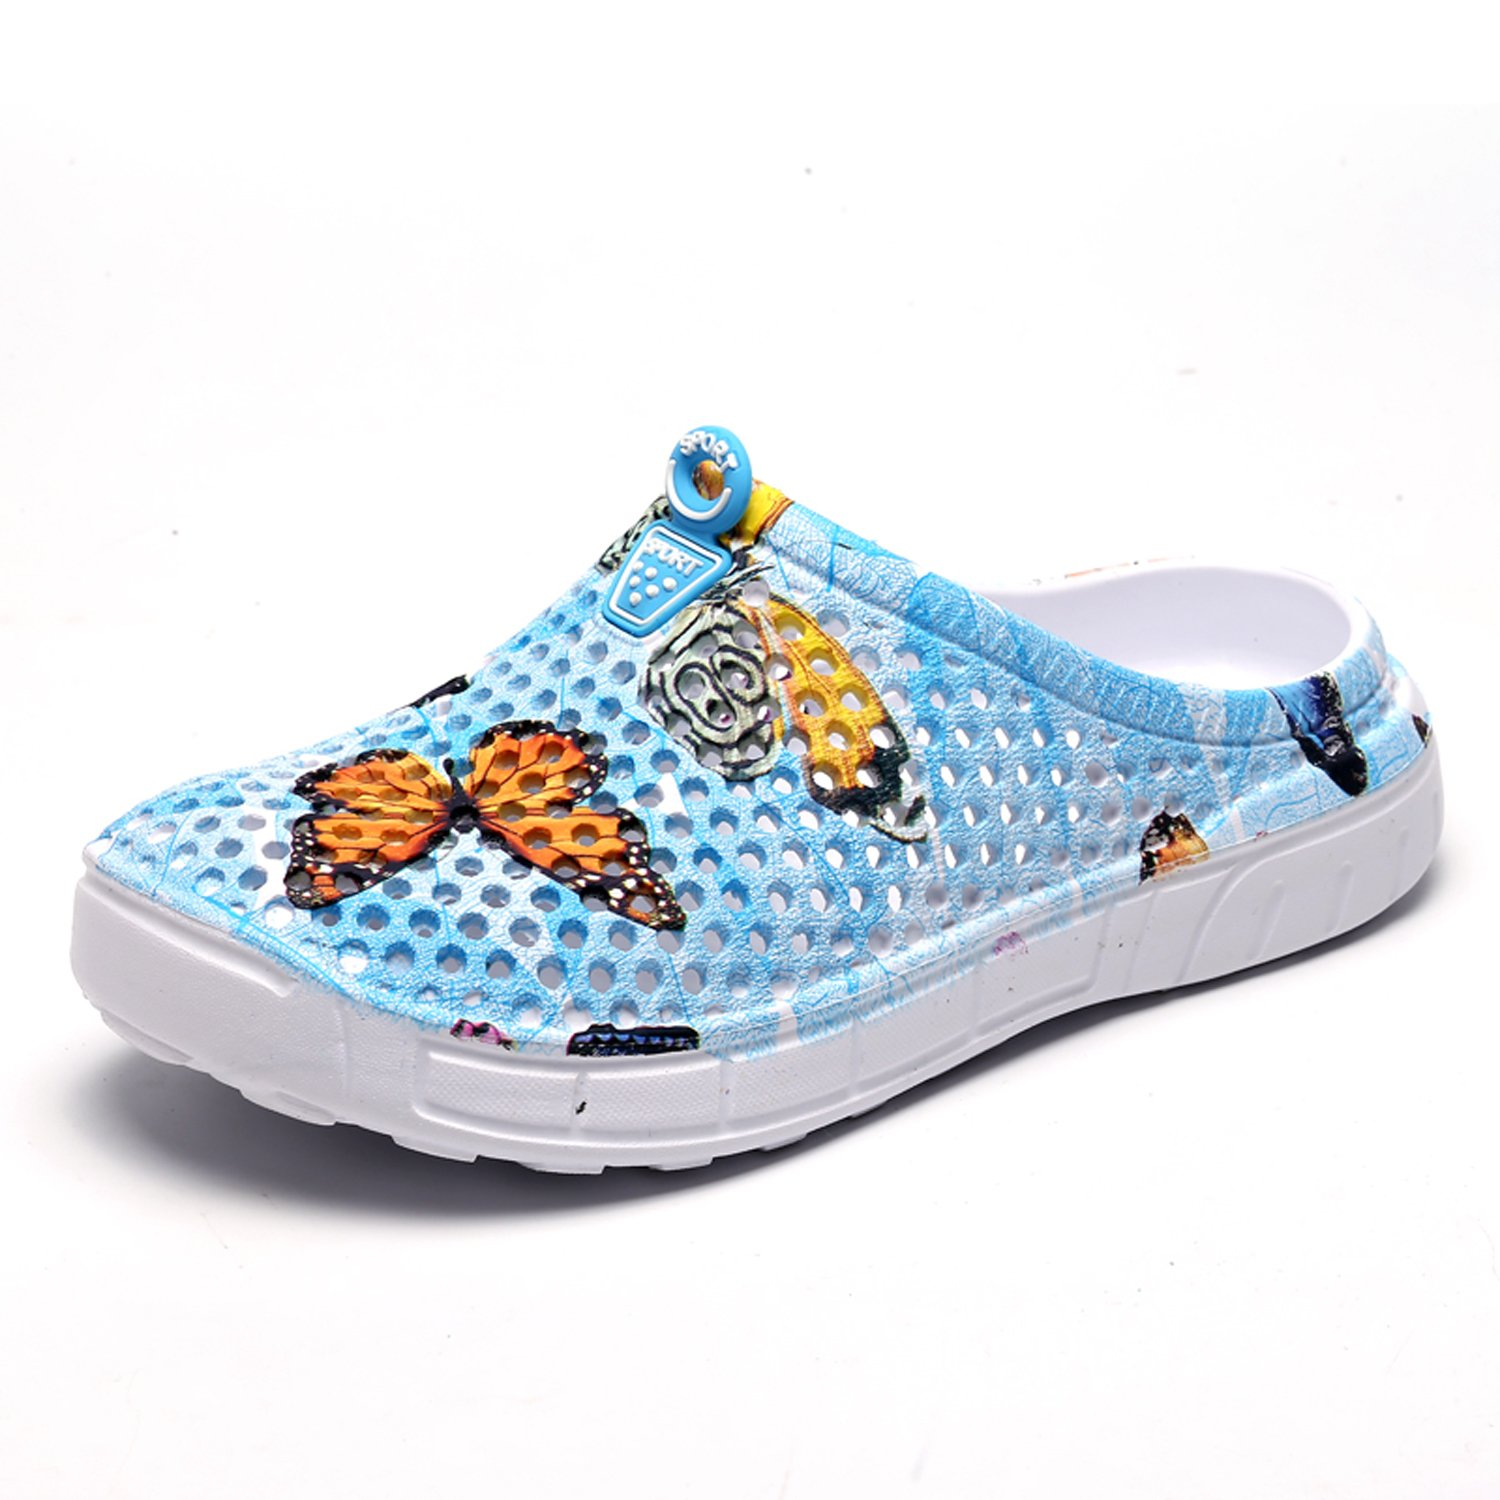 OUYAJI Garden Clog Shoes Slippers Beach Footwear Womens Summer Breathable Mesh Sandals 161-6Sky Blue-40